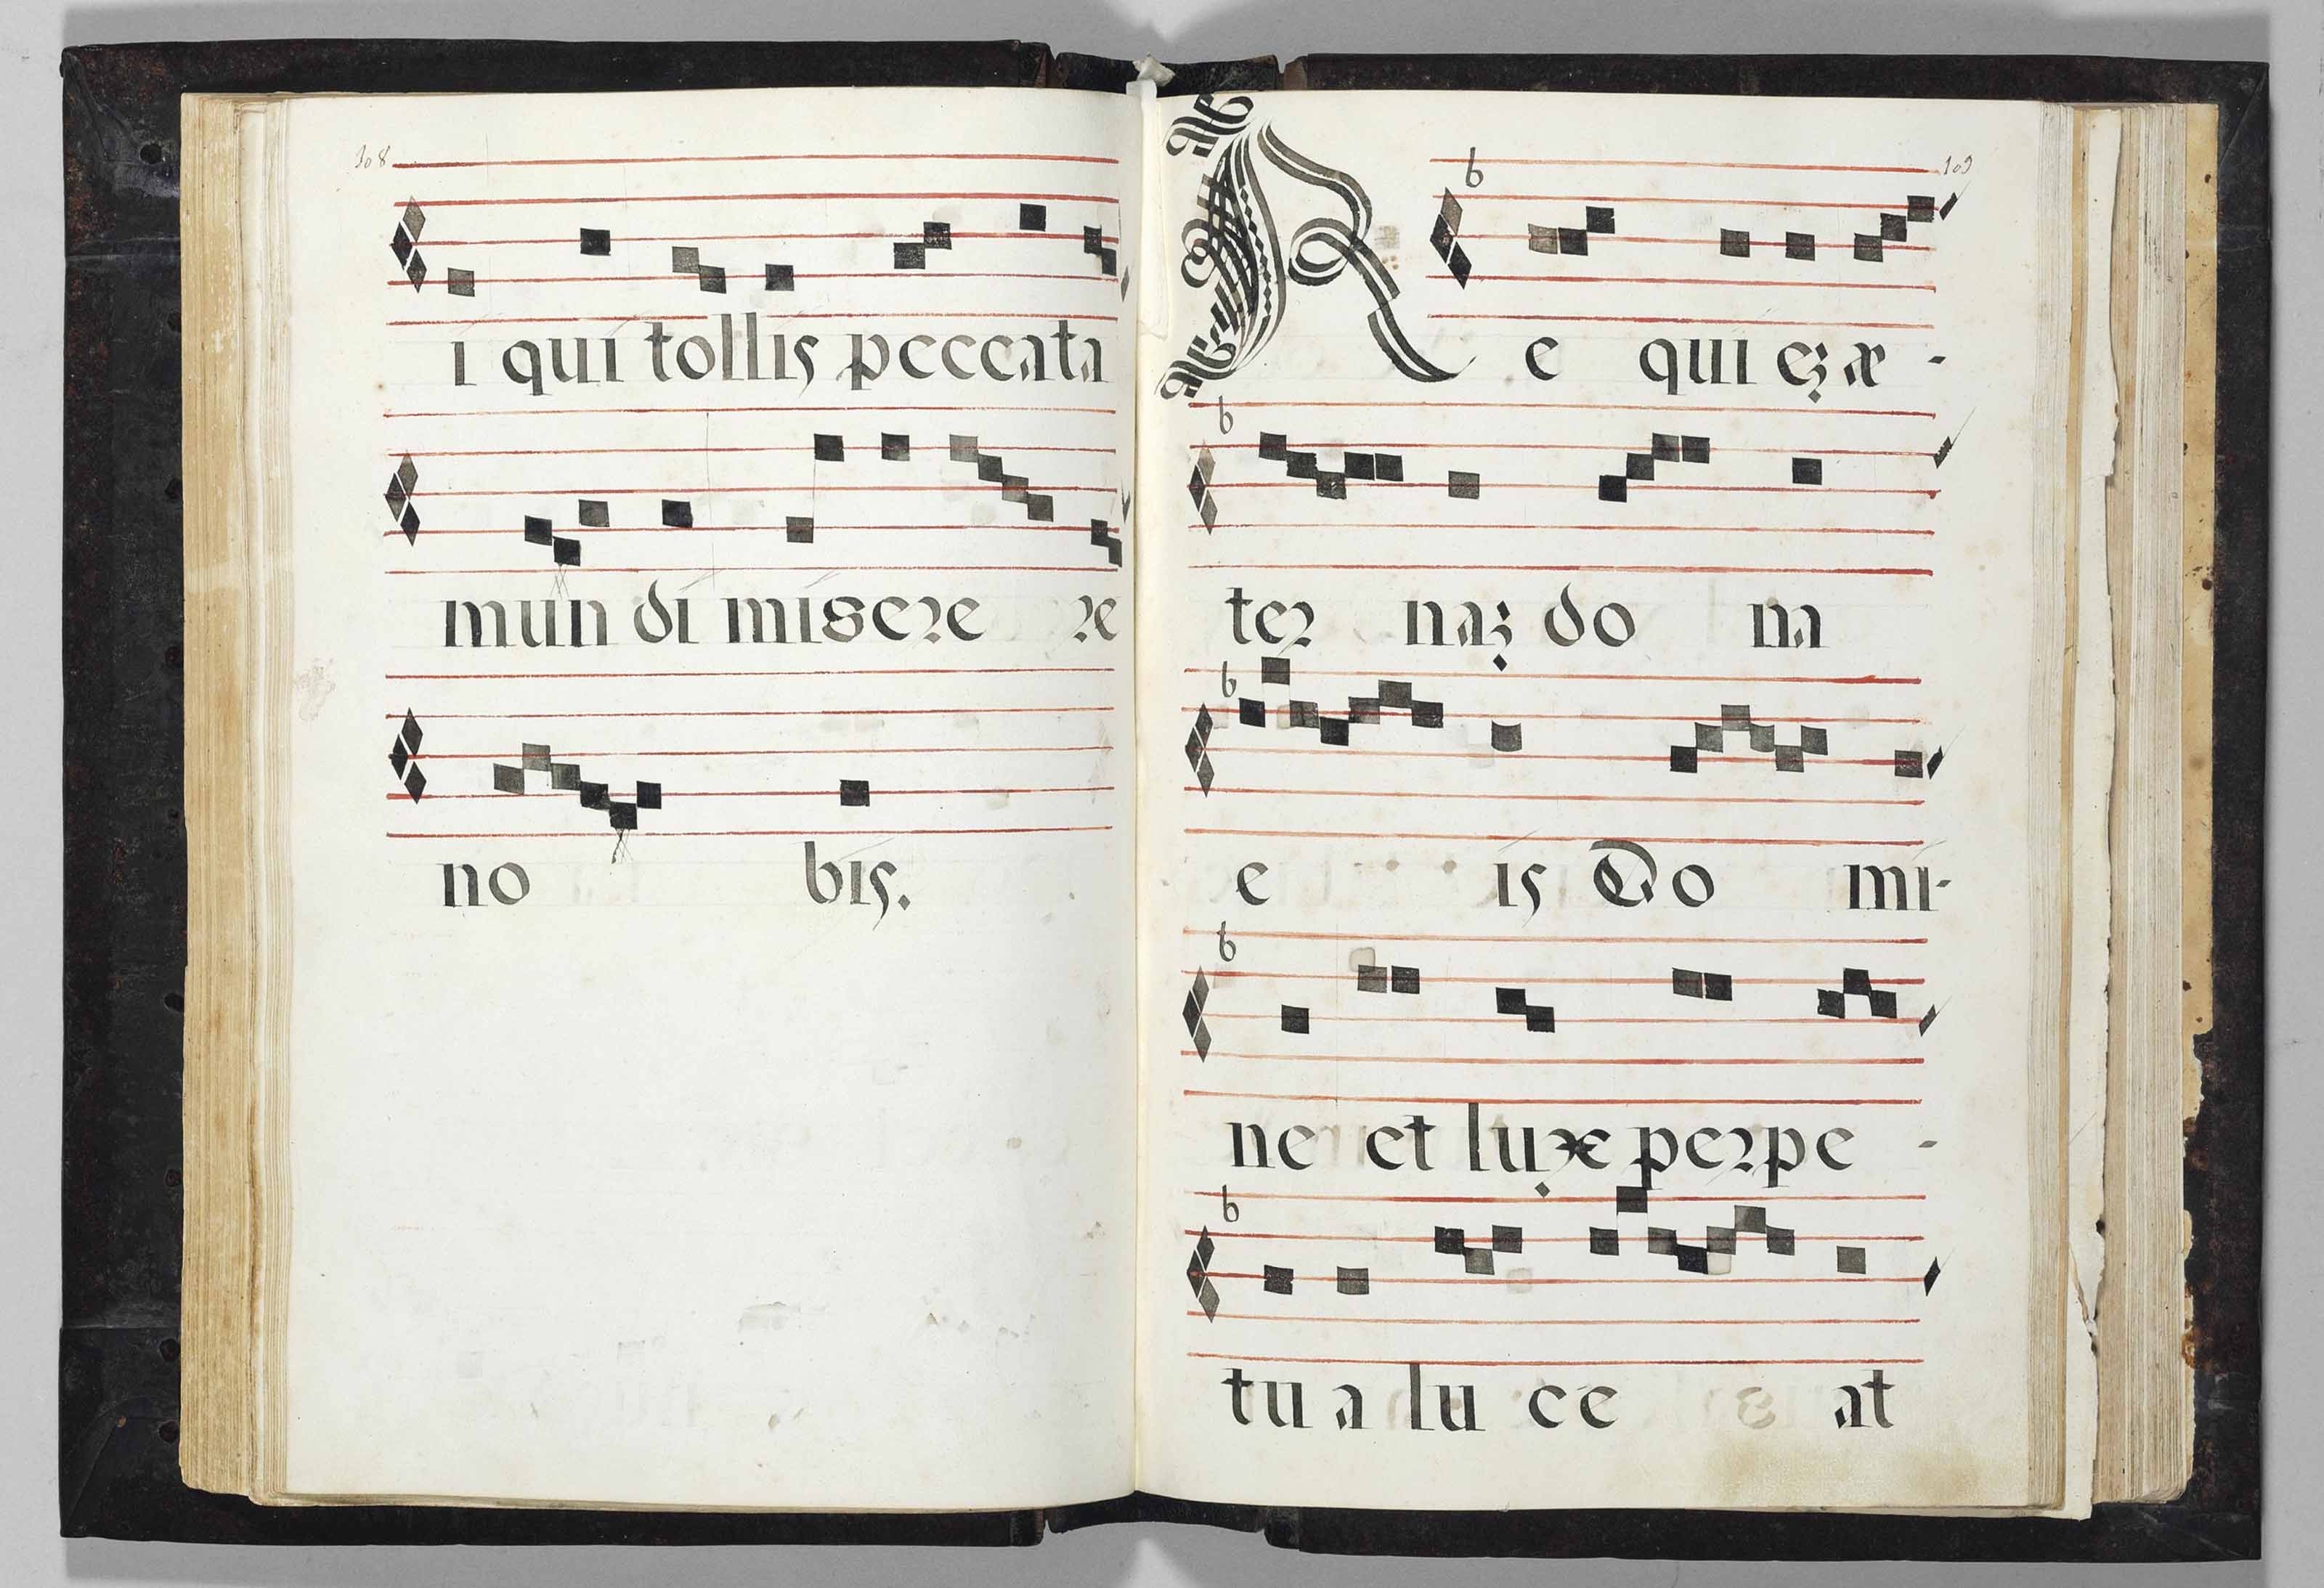 KYRIALE and HYMNAL, in Latin, DECORATED MANUSCRIPT ON PAPER